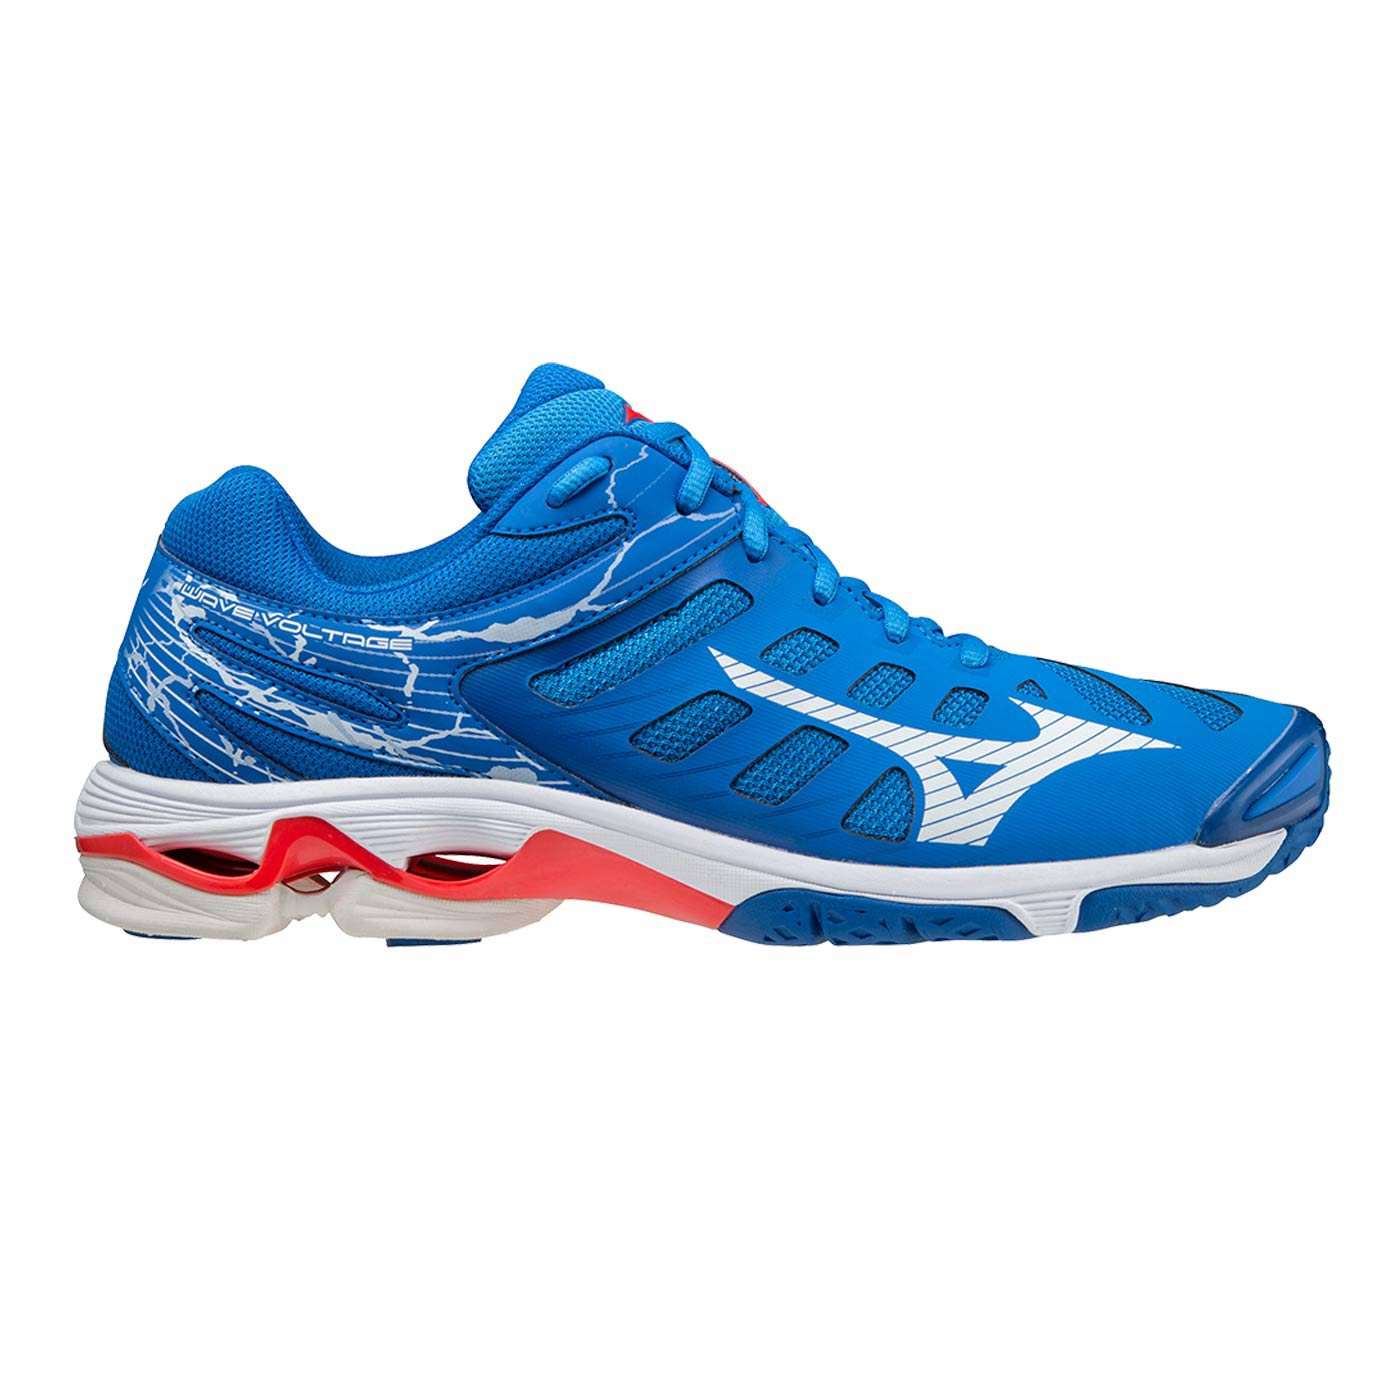 WAVE VOLTAGE-FRENCH BLUE/WHITE/IGNITION RED